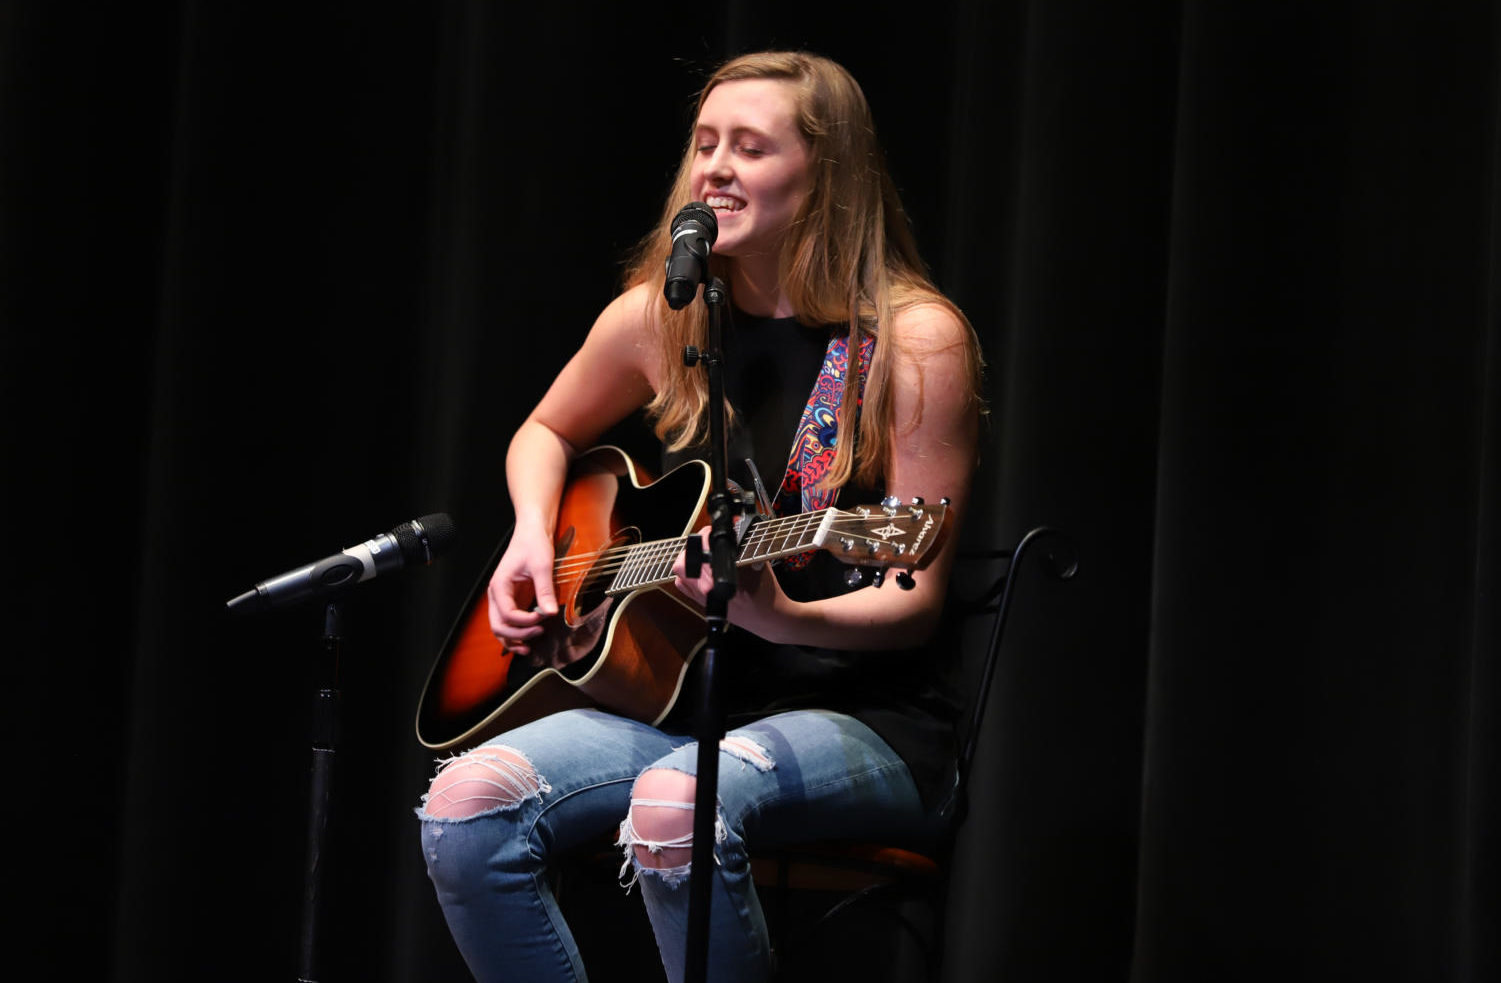 The winner of the second annual talent show, junior Dessa Outman, sings, plays and performs an original song.